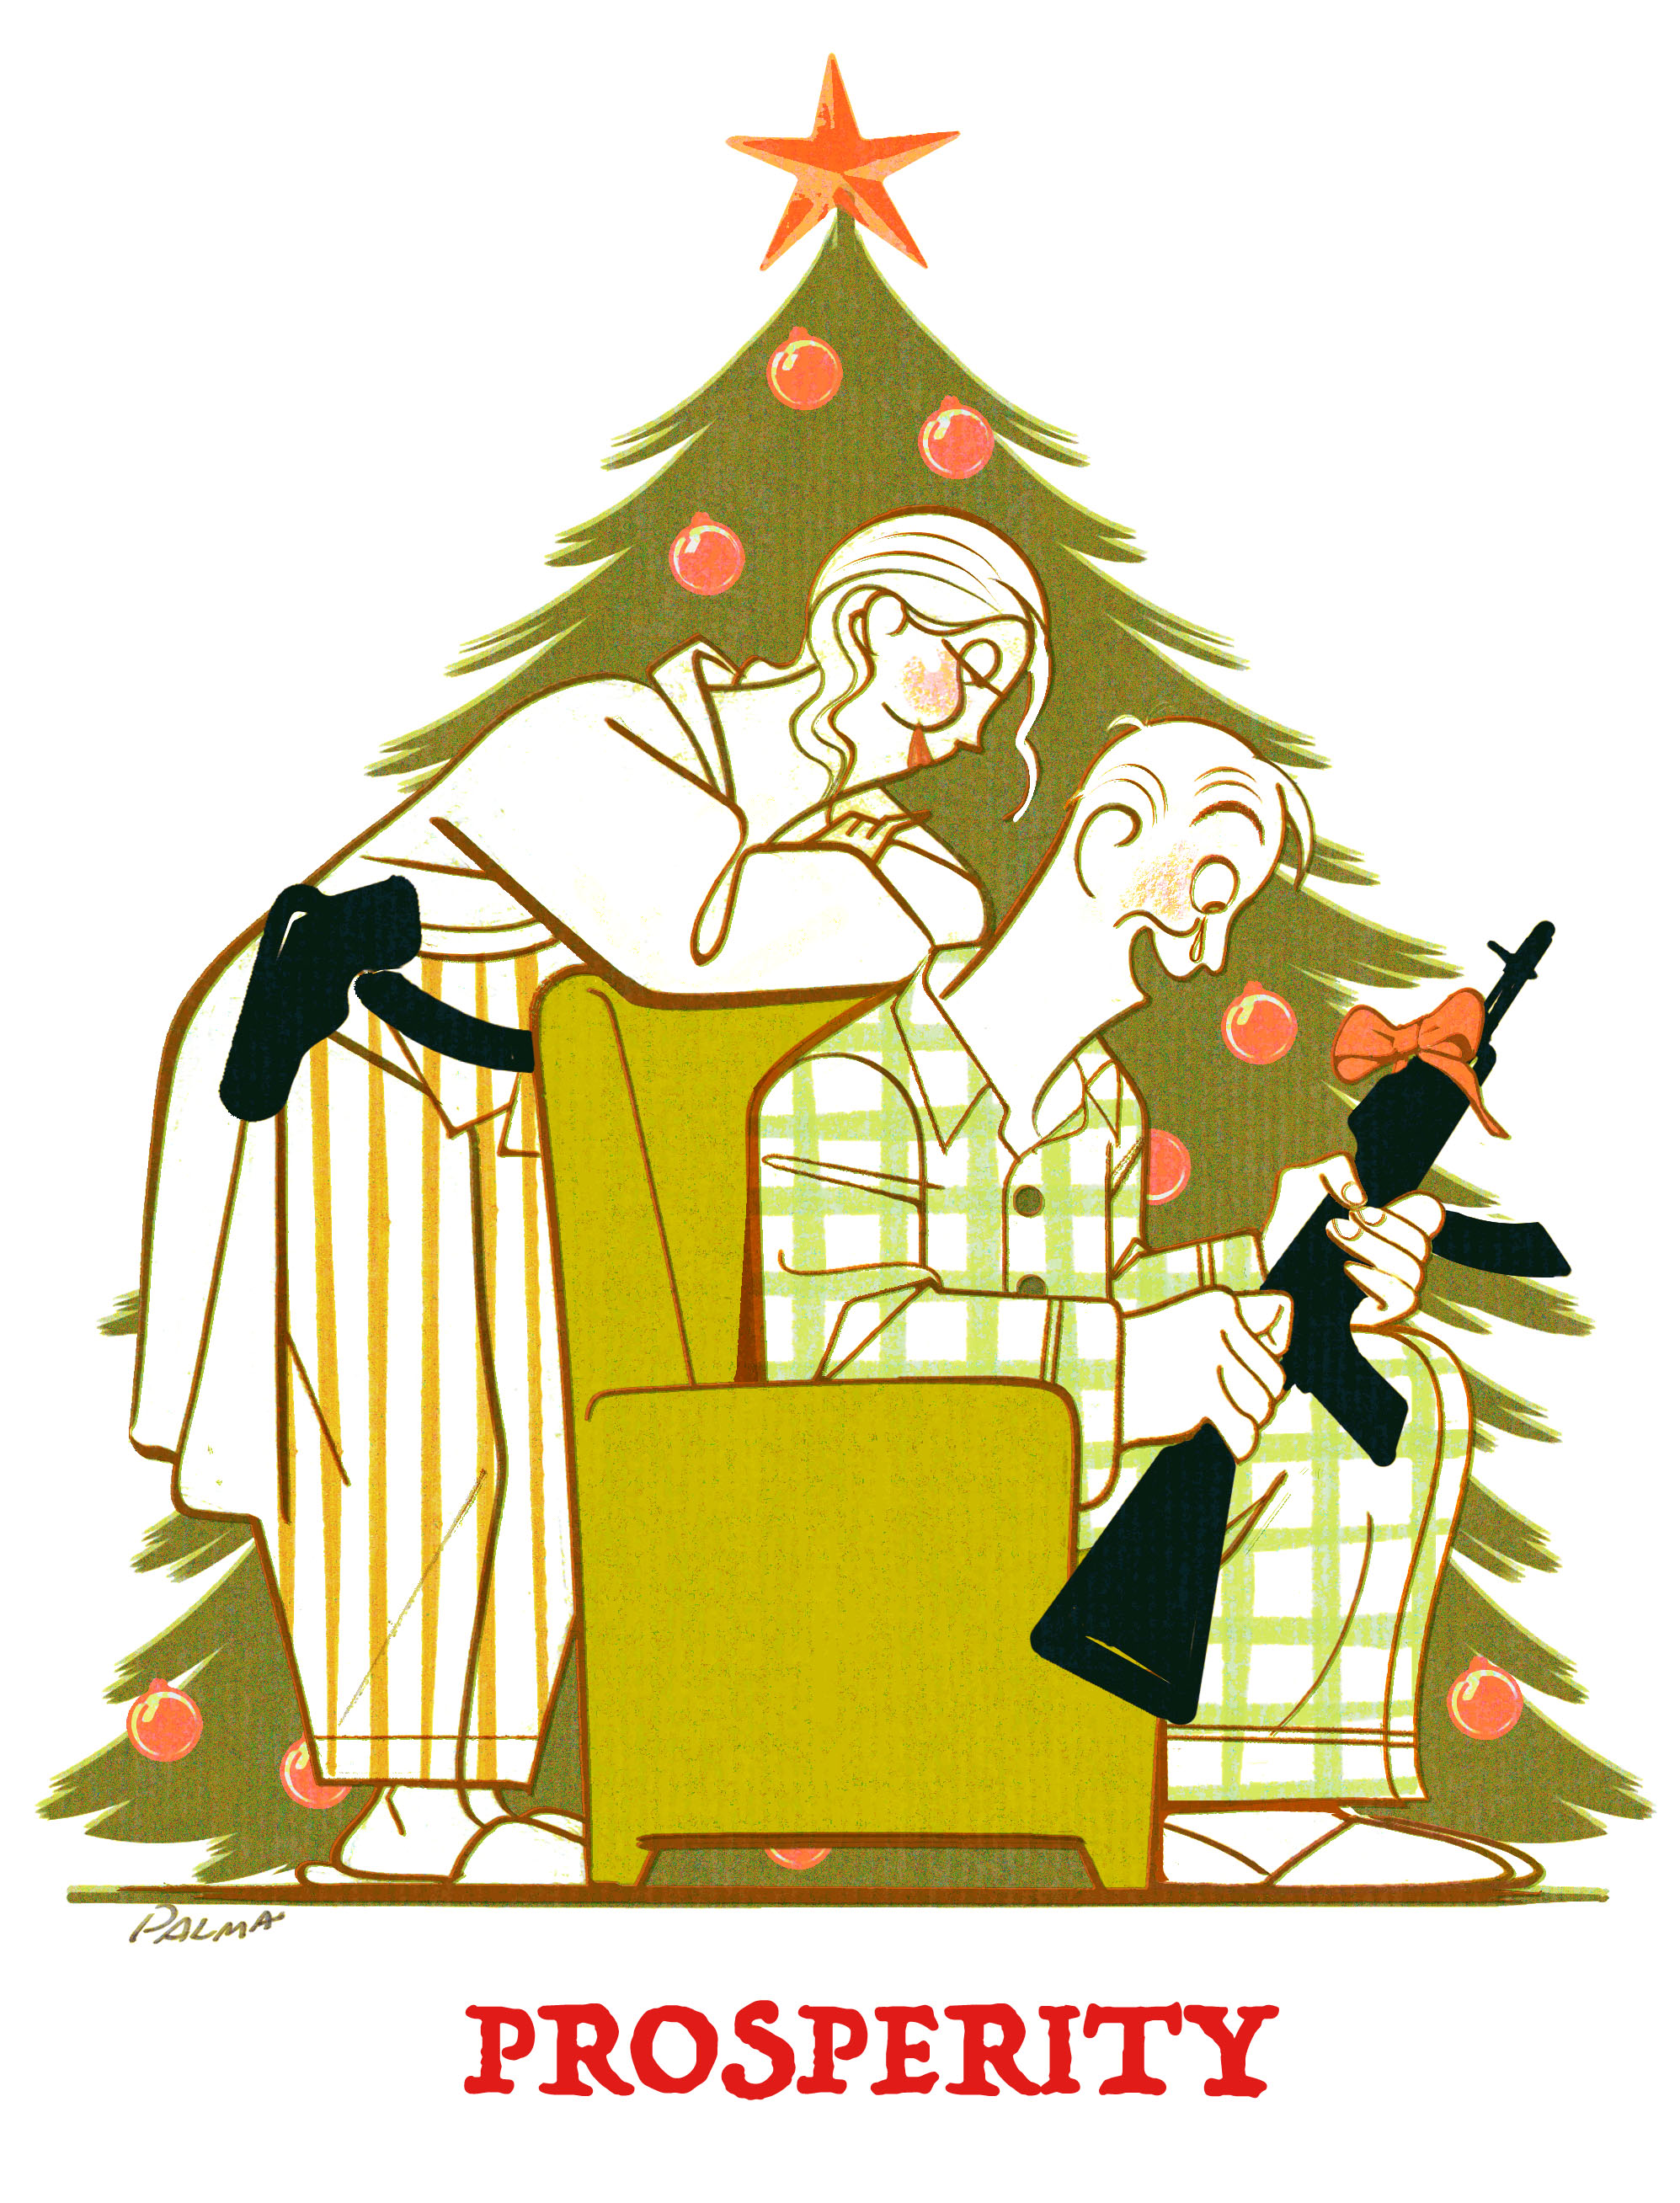 Drawing of a family exchanging guns for Christmas